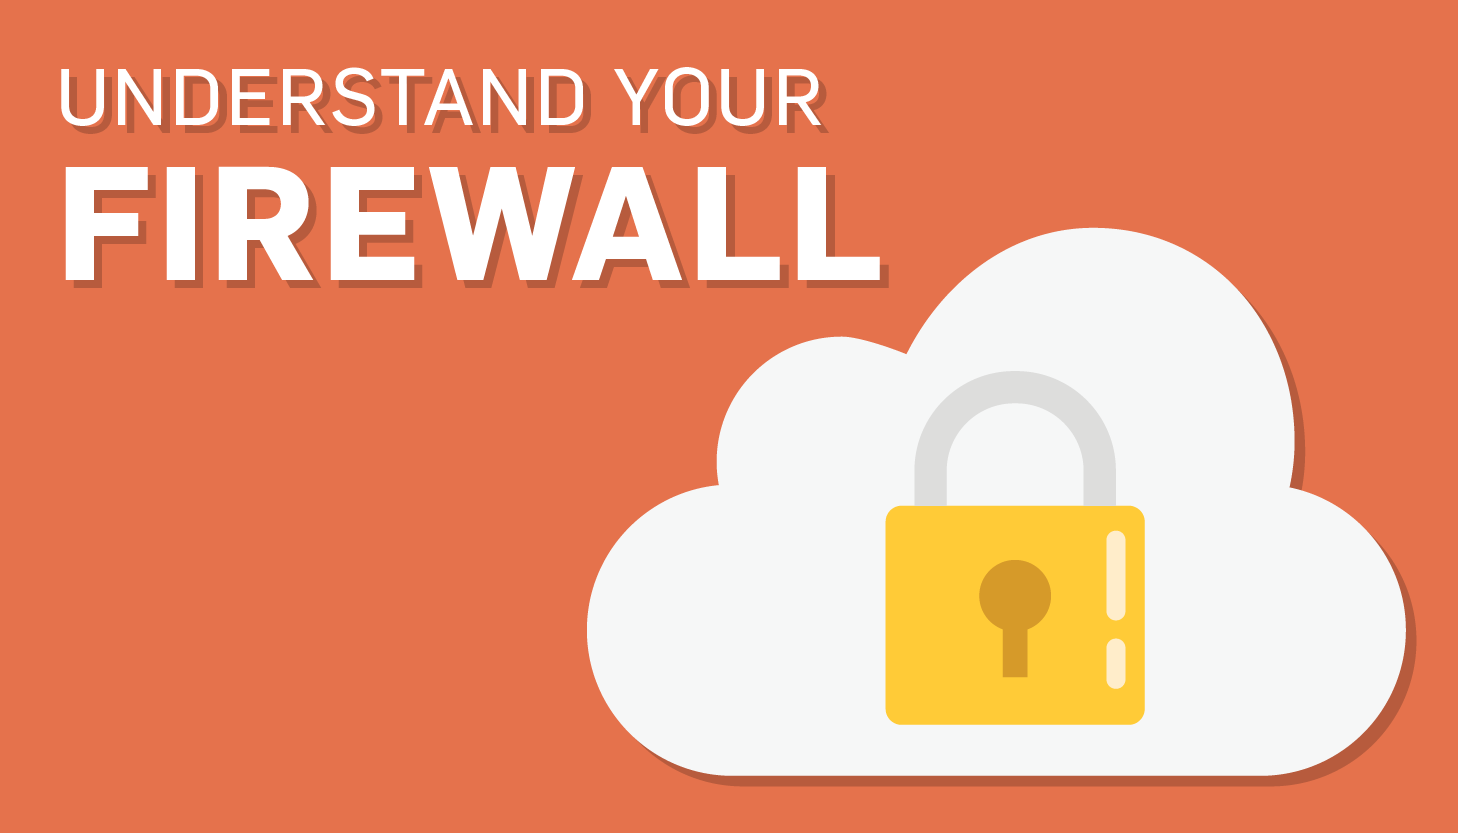 Firewalls 101: 5 Things You Should Know